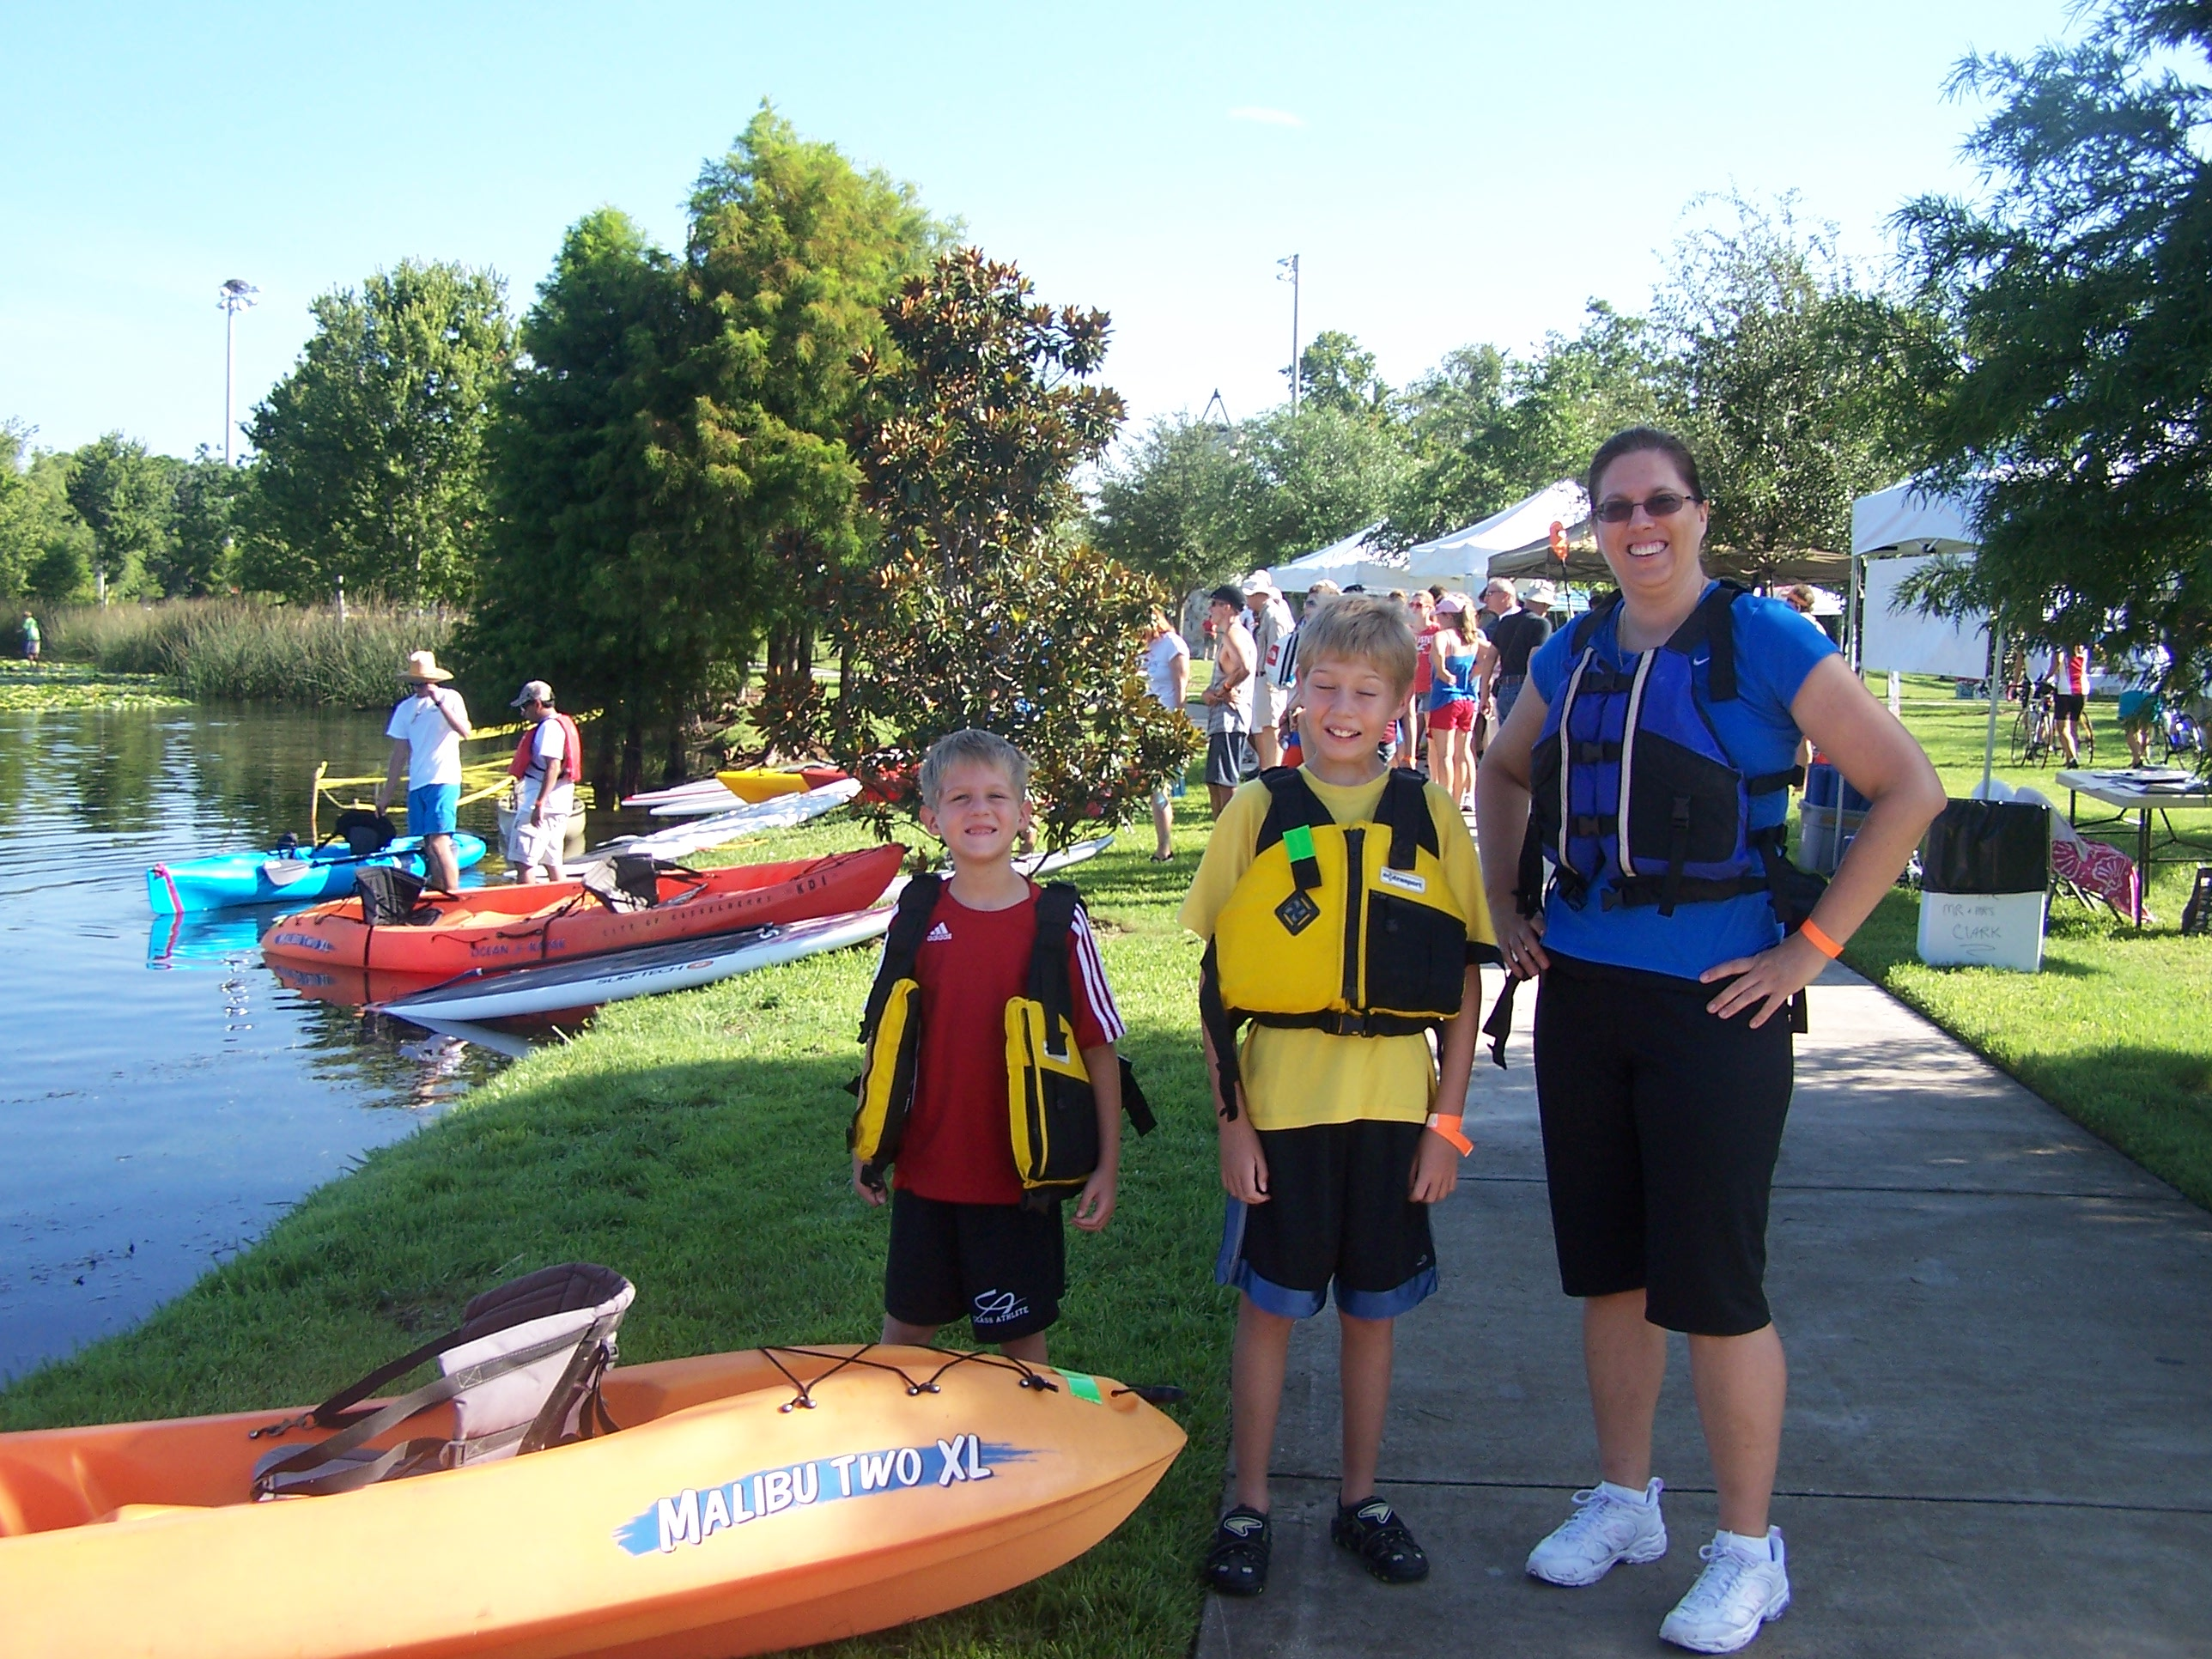 Family wearing life jackets with kayaks